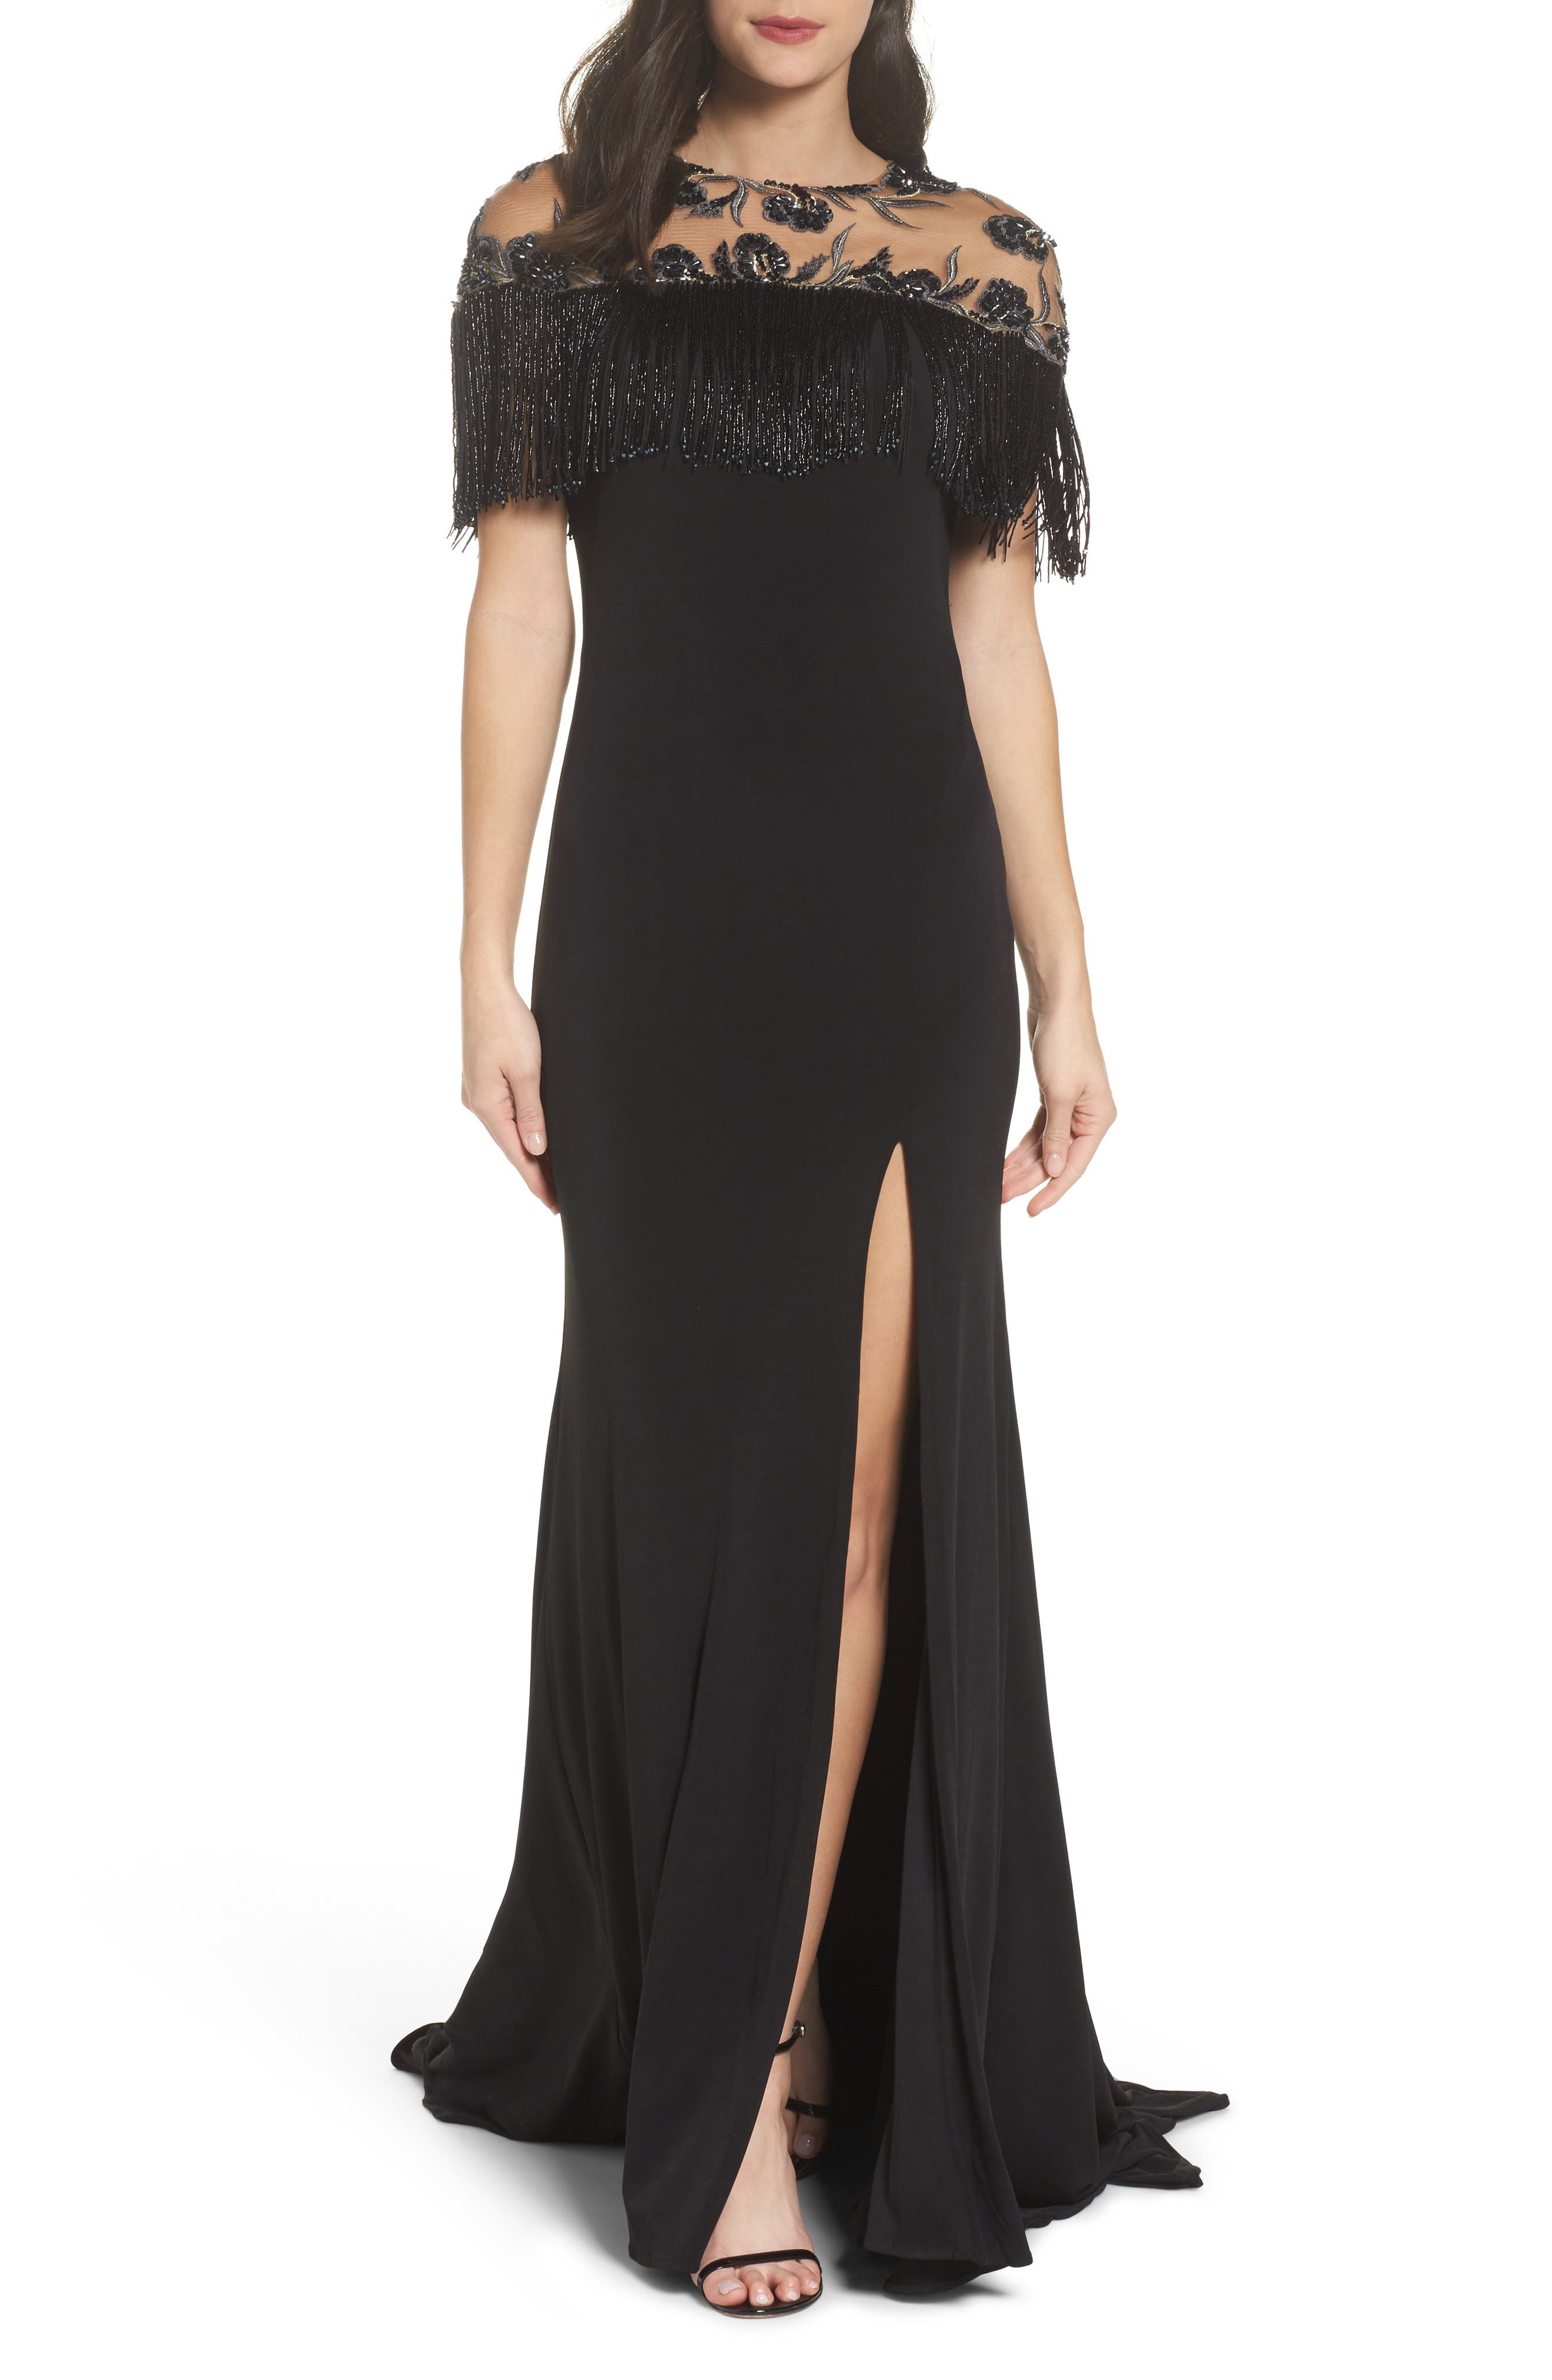 Main Image - Mac Duggal Beaded Fringe Bodice Gown